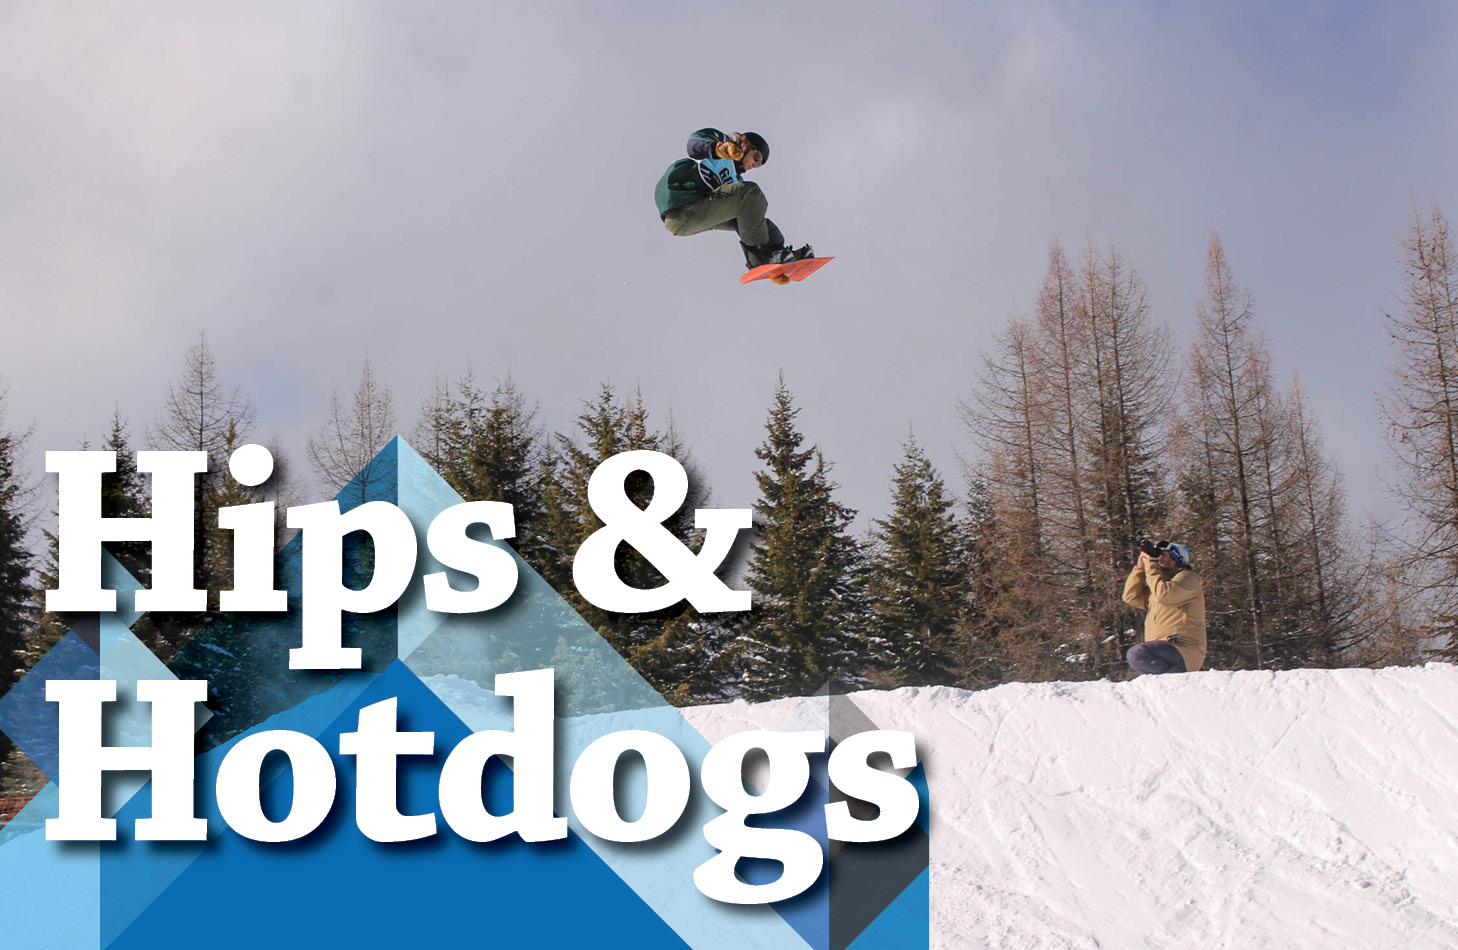 Hips and Hotdogs with snowboarder